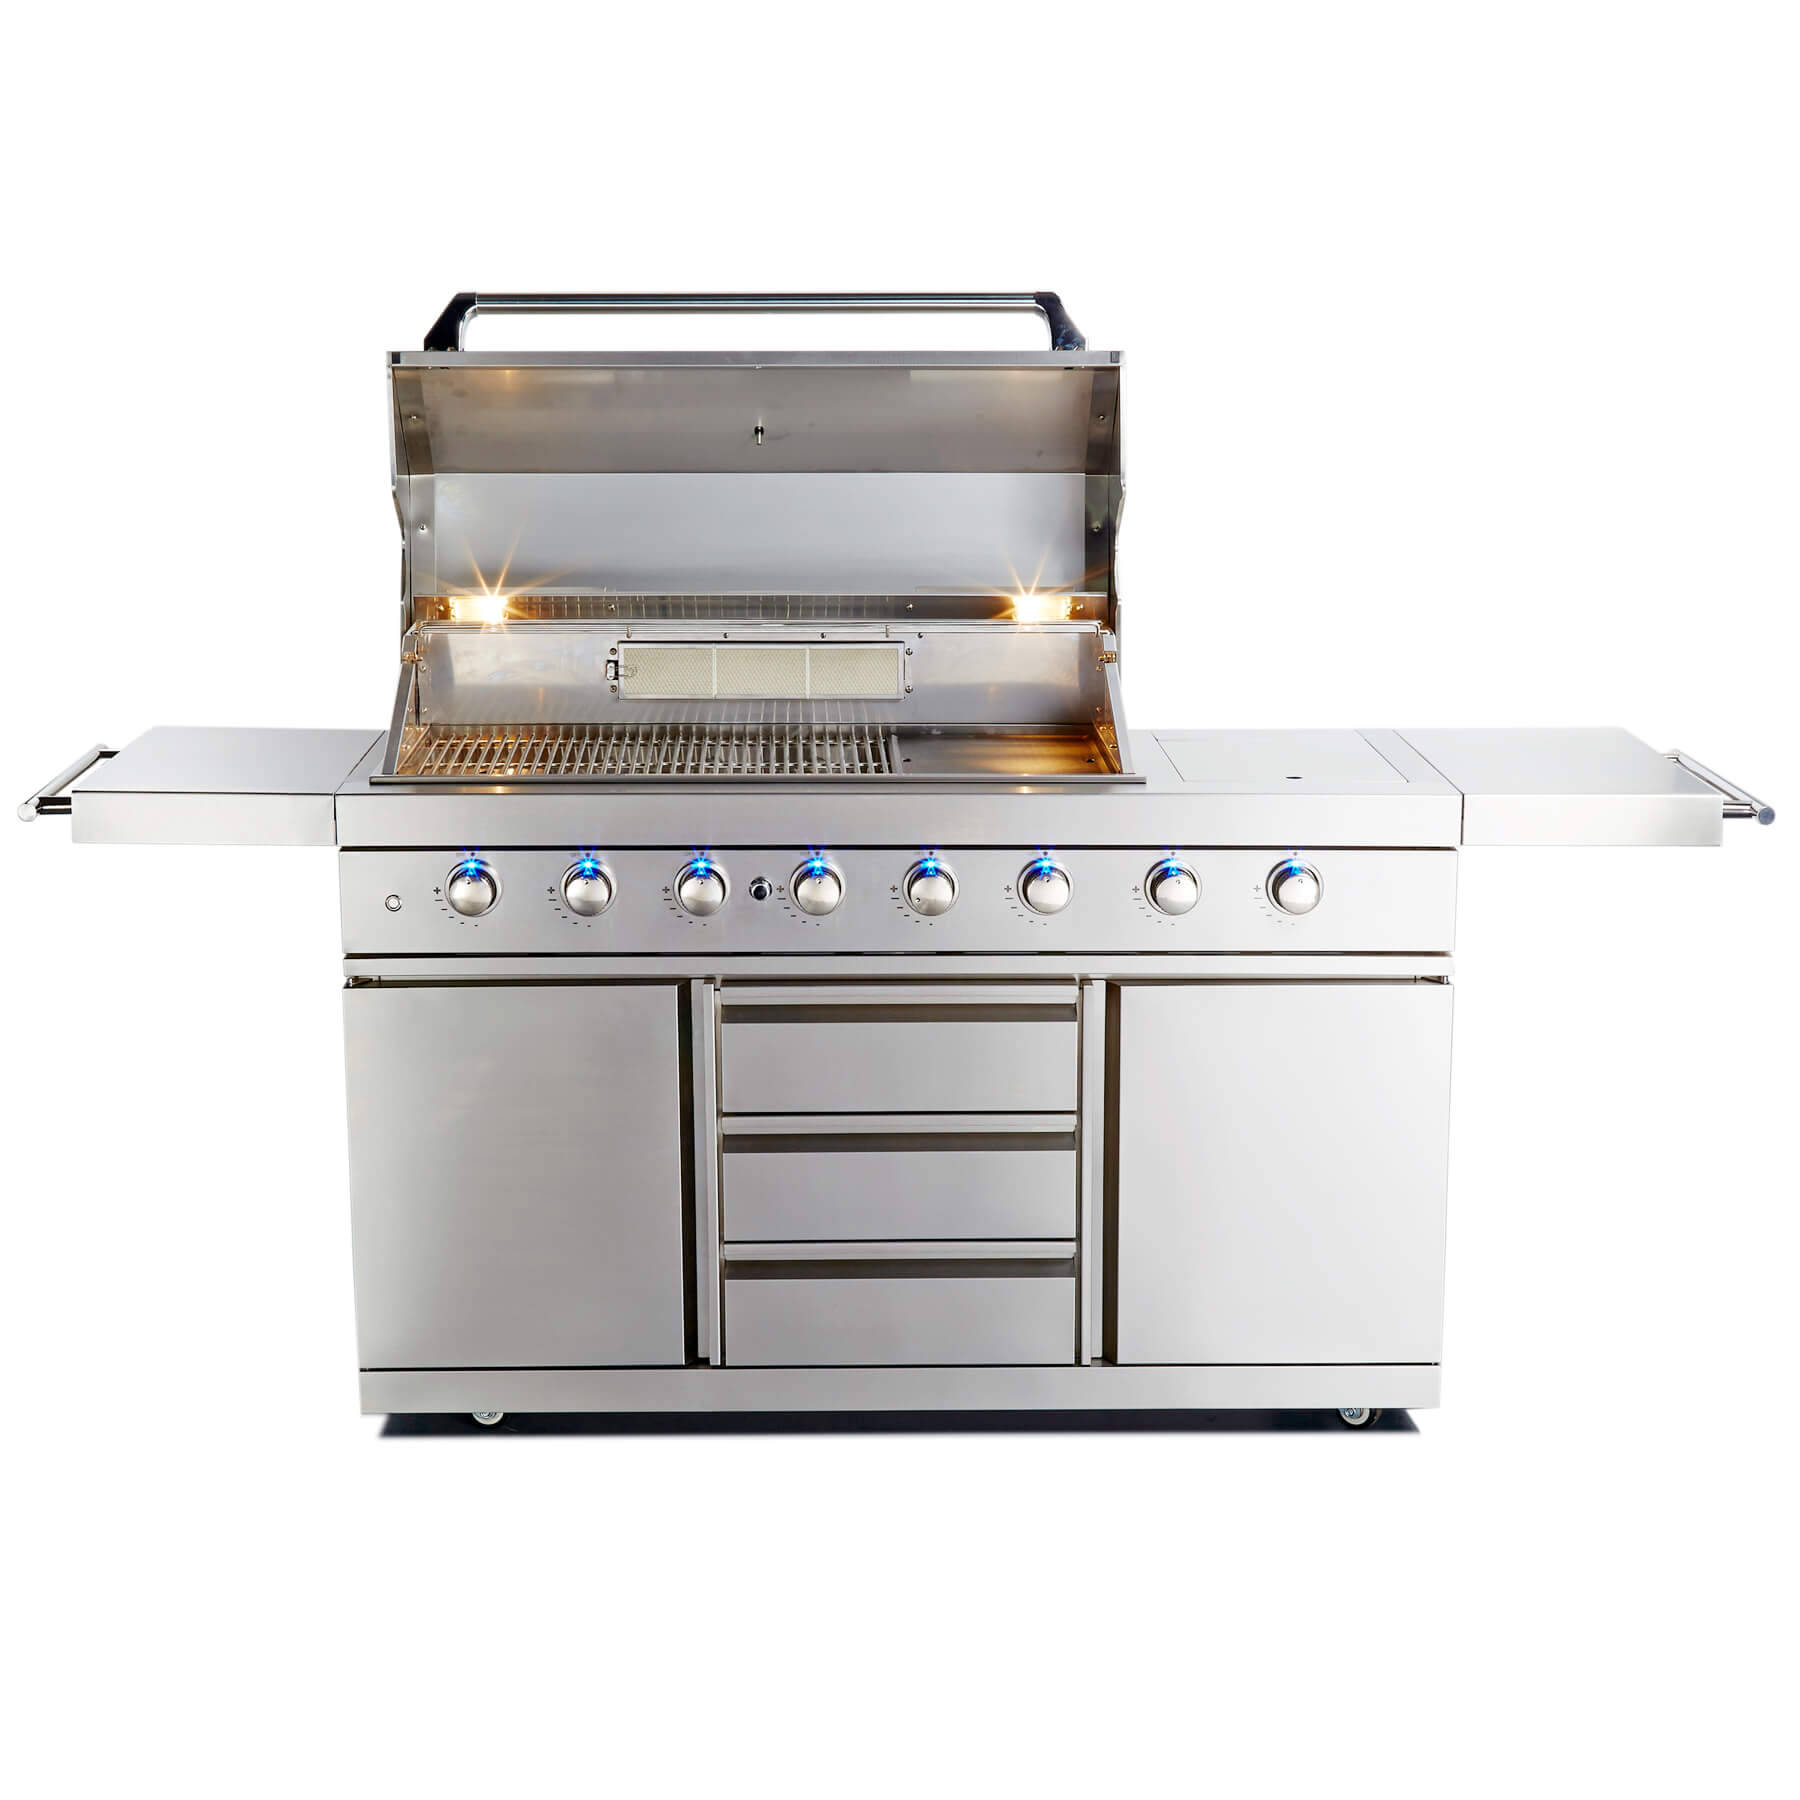 top-line-allgrill-ultra-mit-airsystem_3